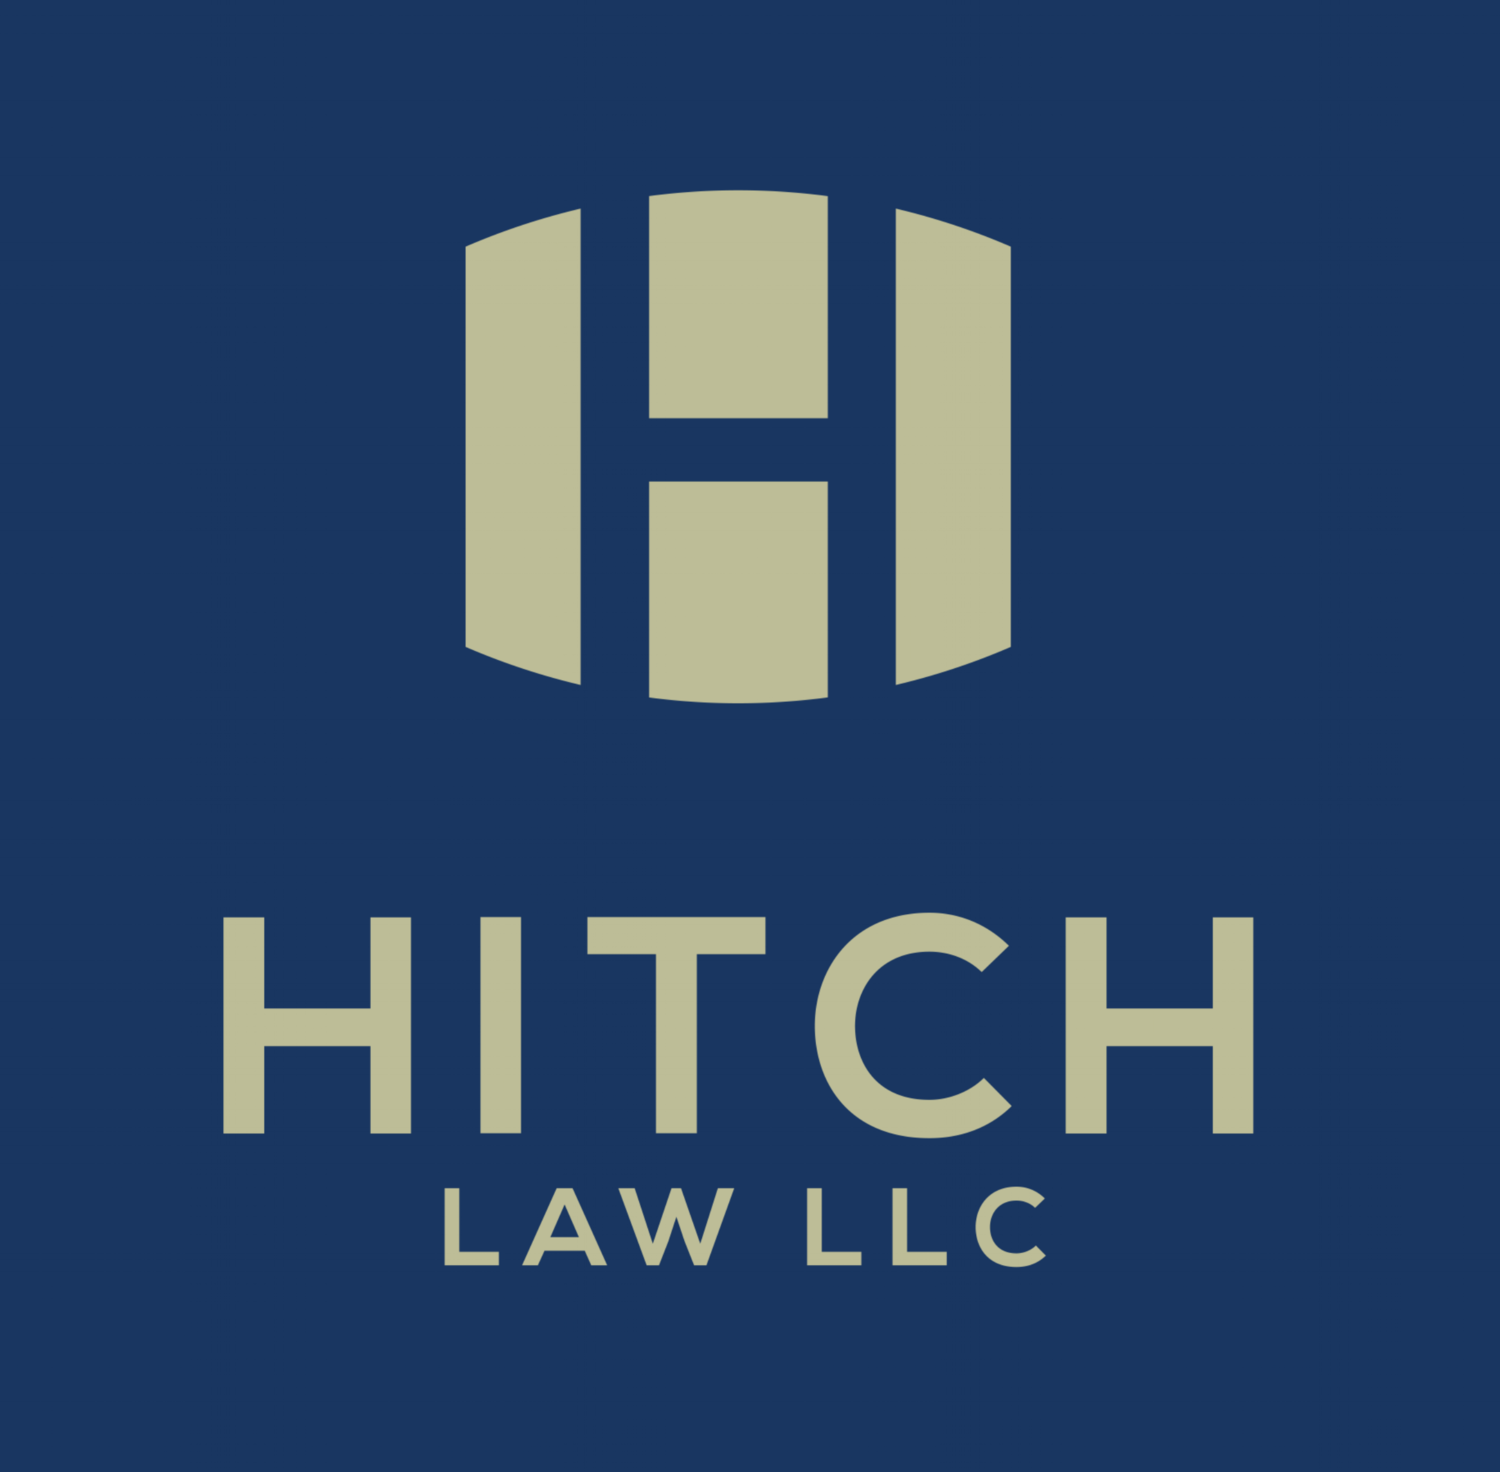 Hitch Law LLC